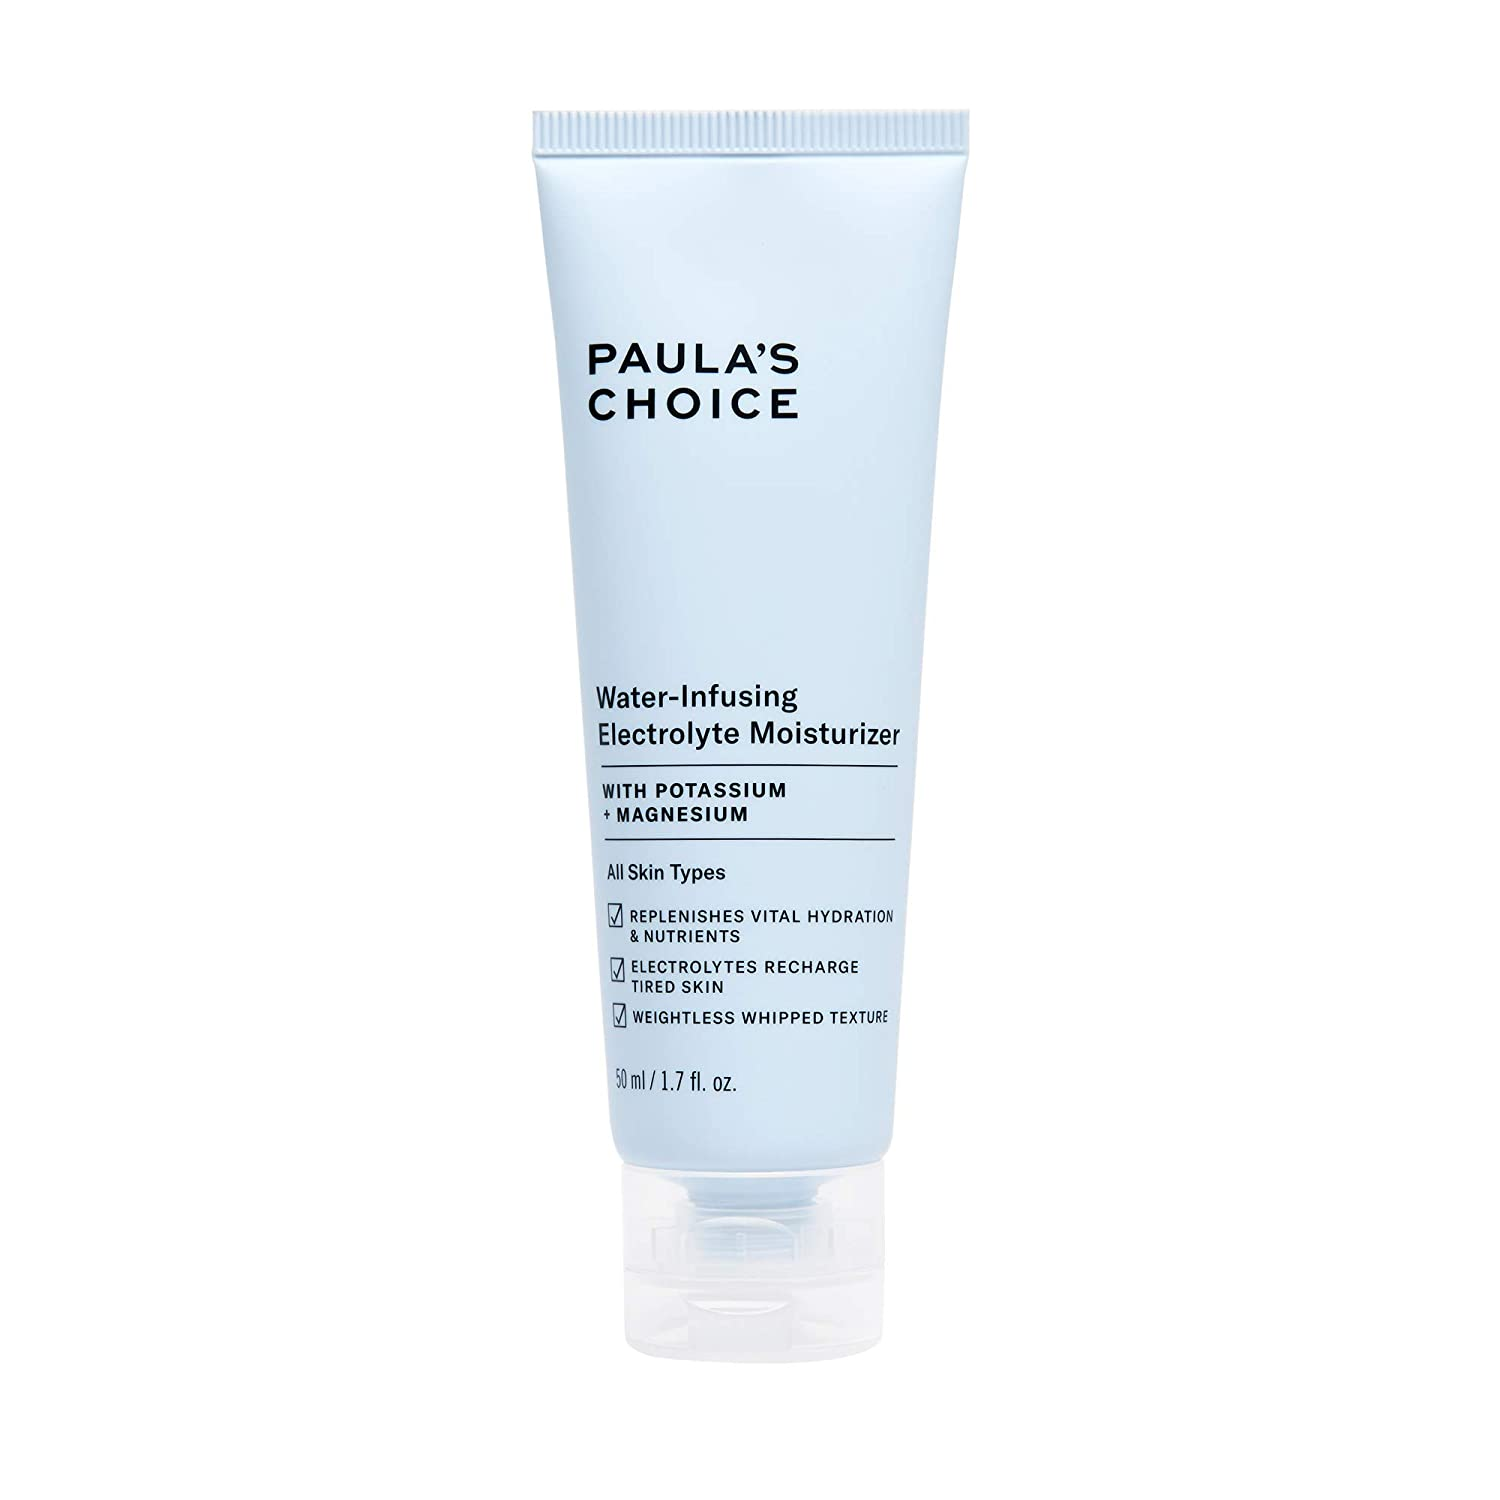 Paula's Choice Cheap Water-Infusing Electrolyte Moisturizer Face Credence Ligh